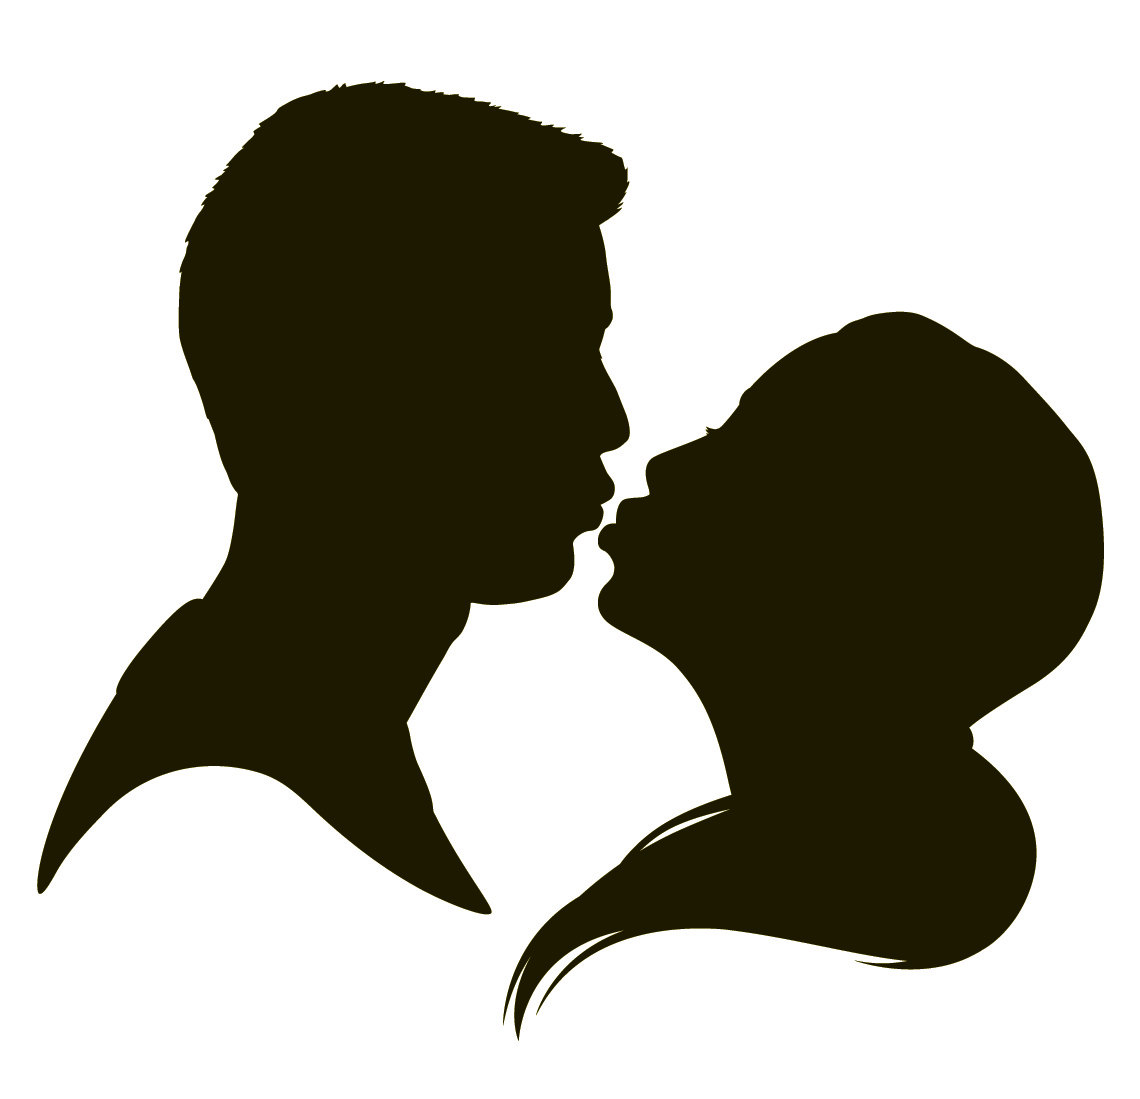 Couple clipart romance. Romantic silhouette at getdrawings